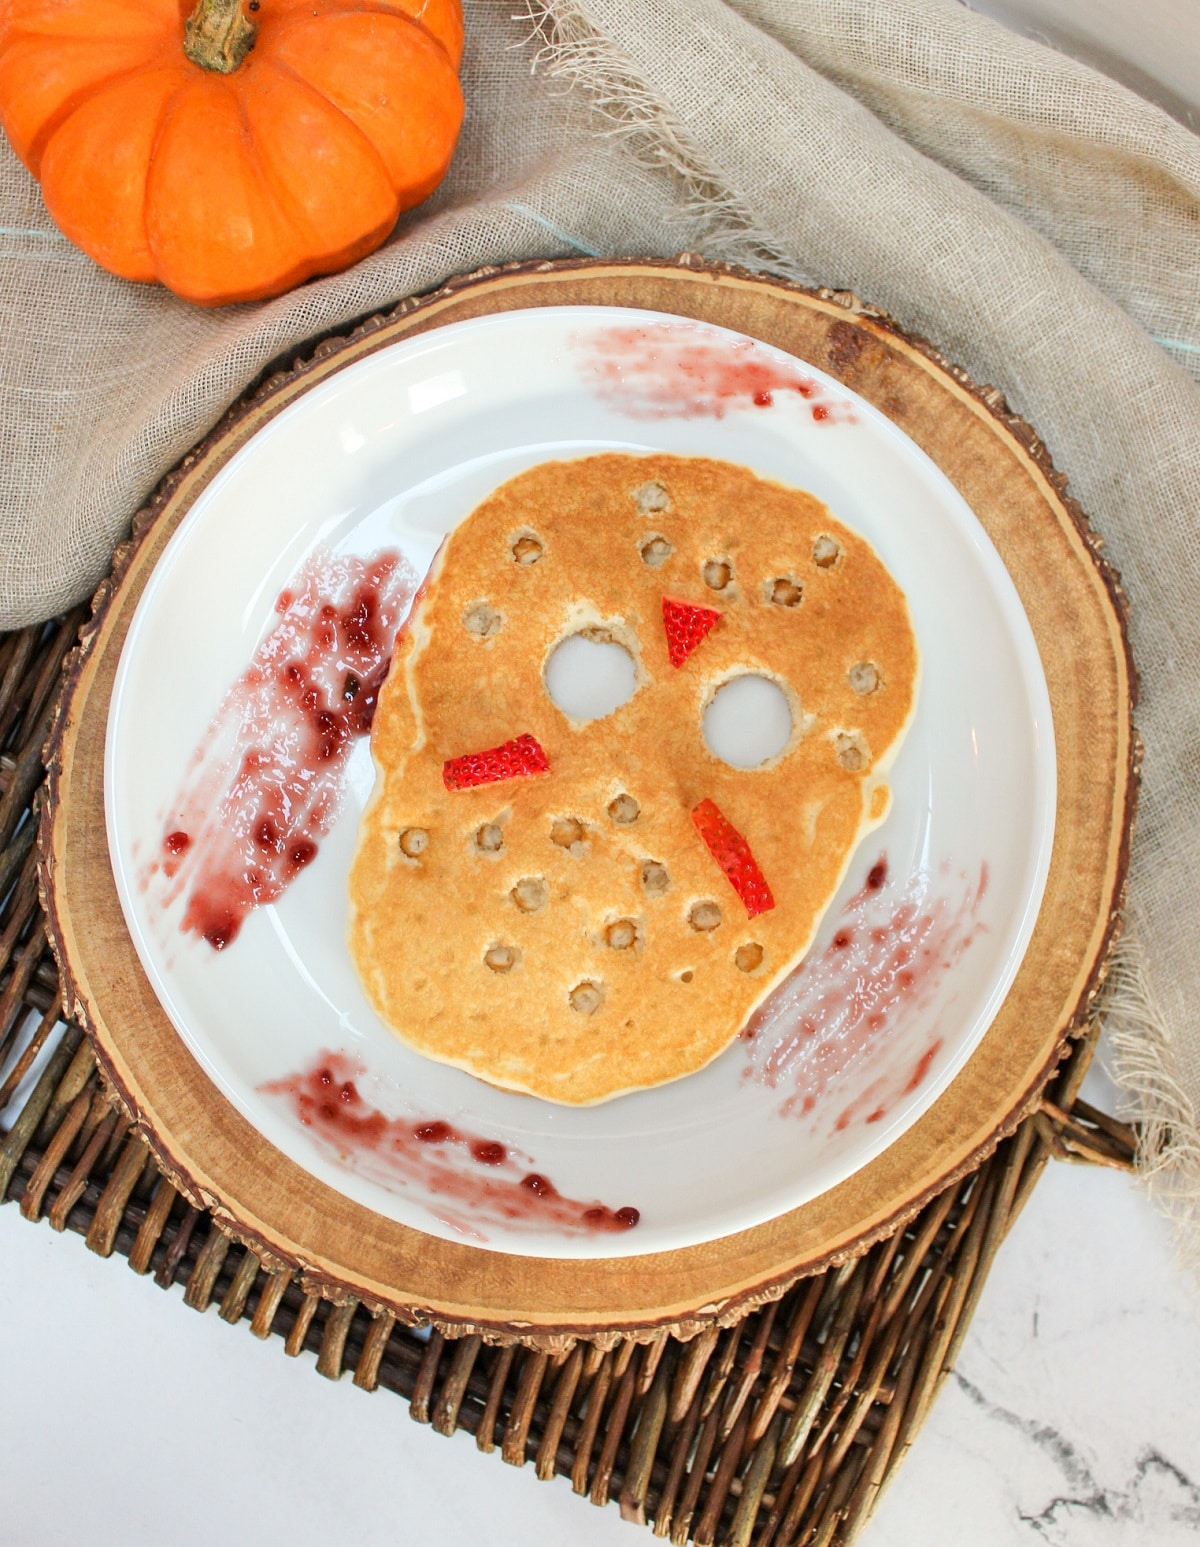 jason vorhees, friday the 13th, ski mask pancake on a plate with raspberry jam on the plate